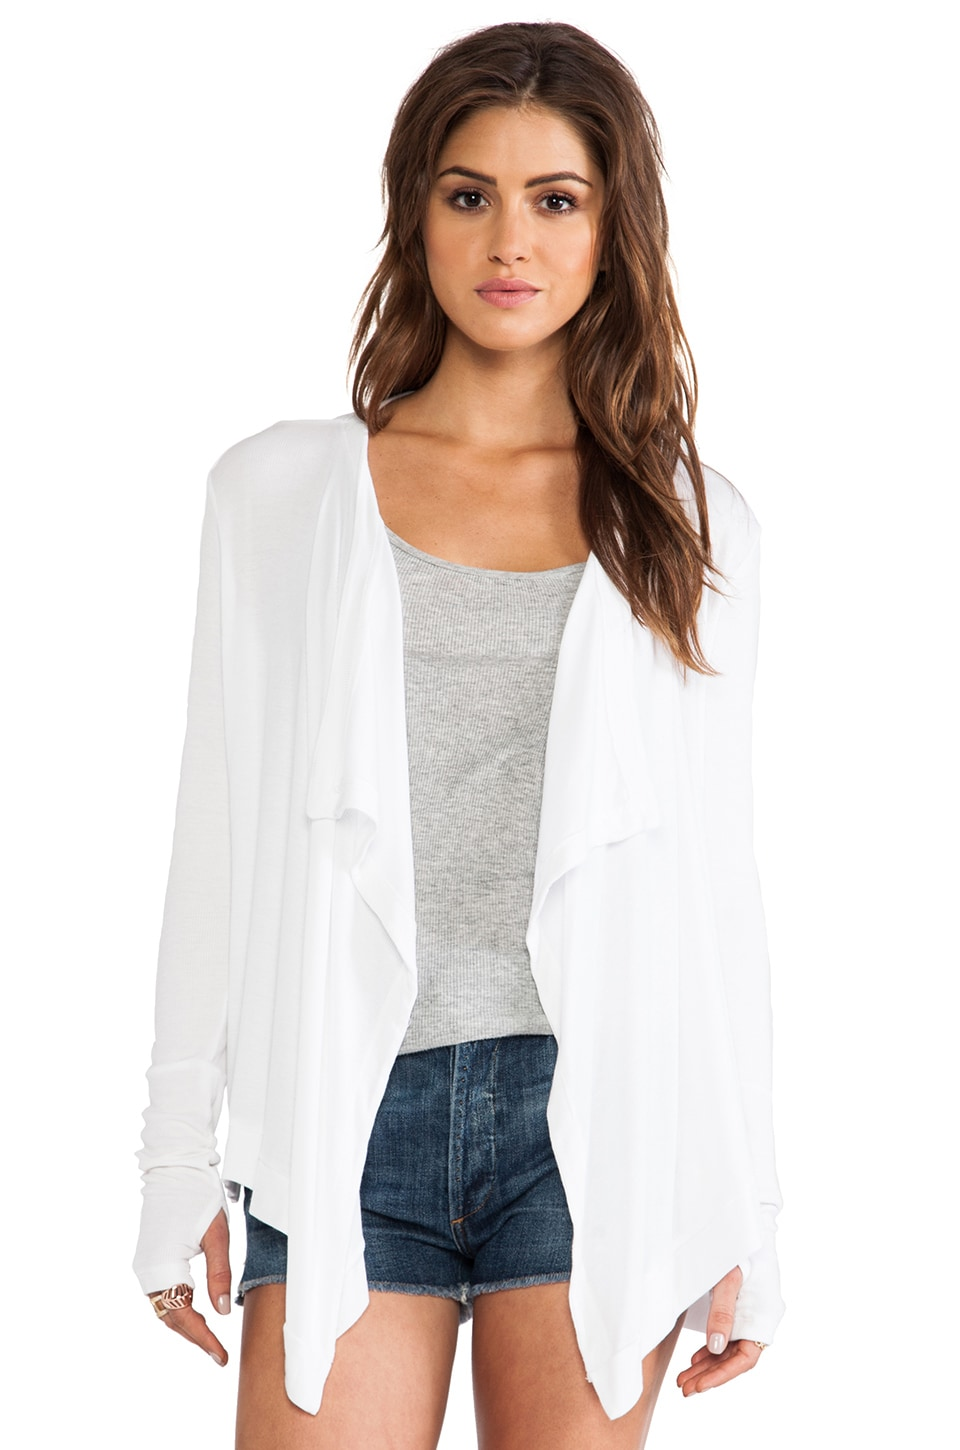 dolan Drape Neck Cardigan in White